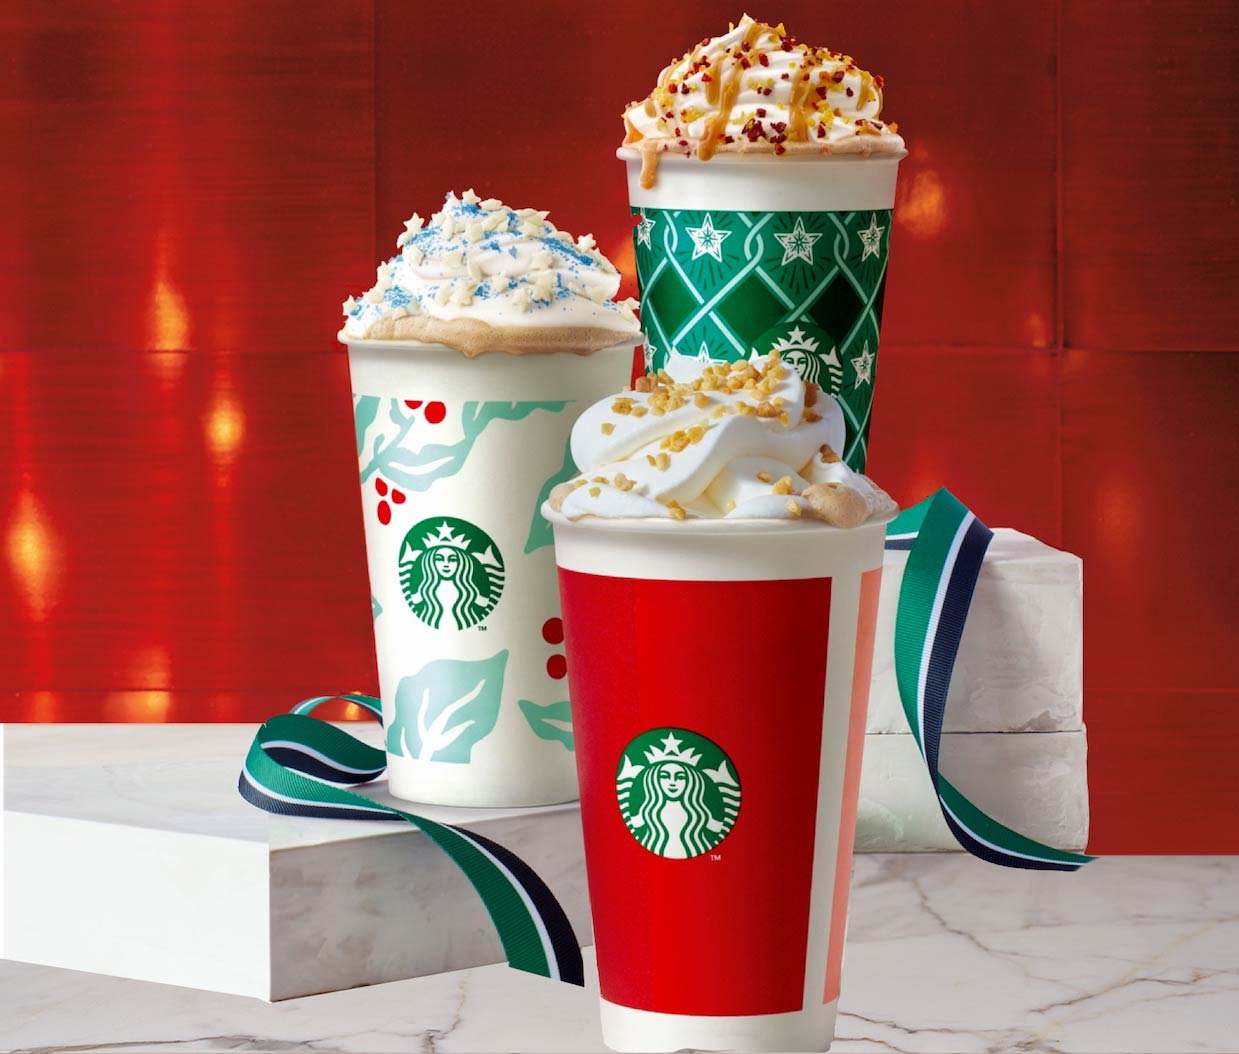 Starbucks Now Offering A Cheese Latte Holiday Drink In